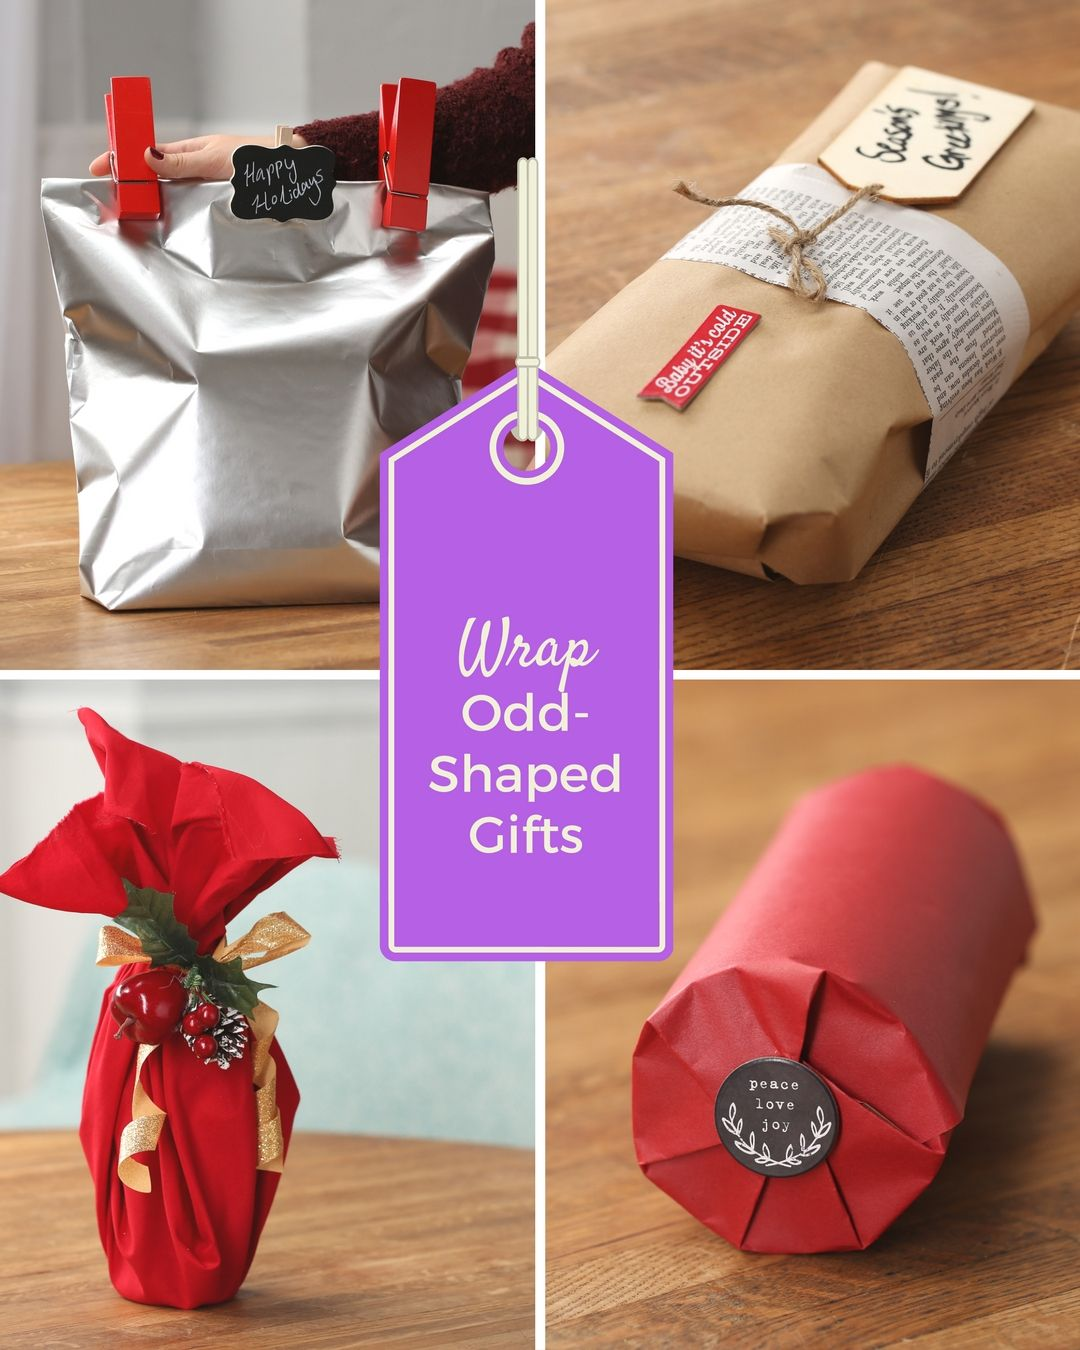 How To Wrap Oddly Shaped Gifts | Gift Tags and Wrapping | Pinterest ...